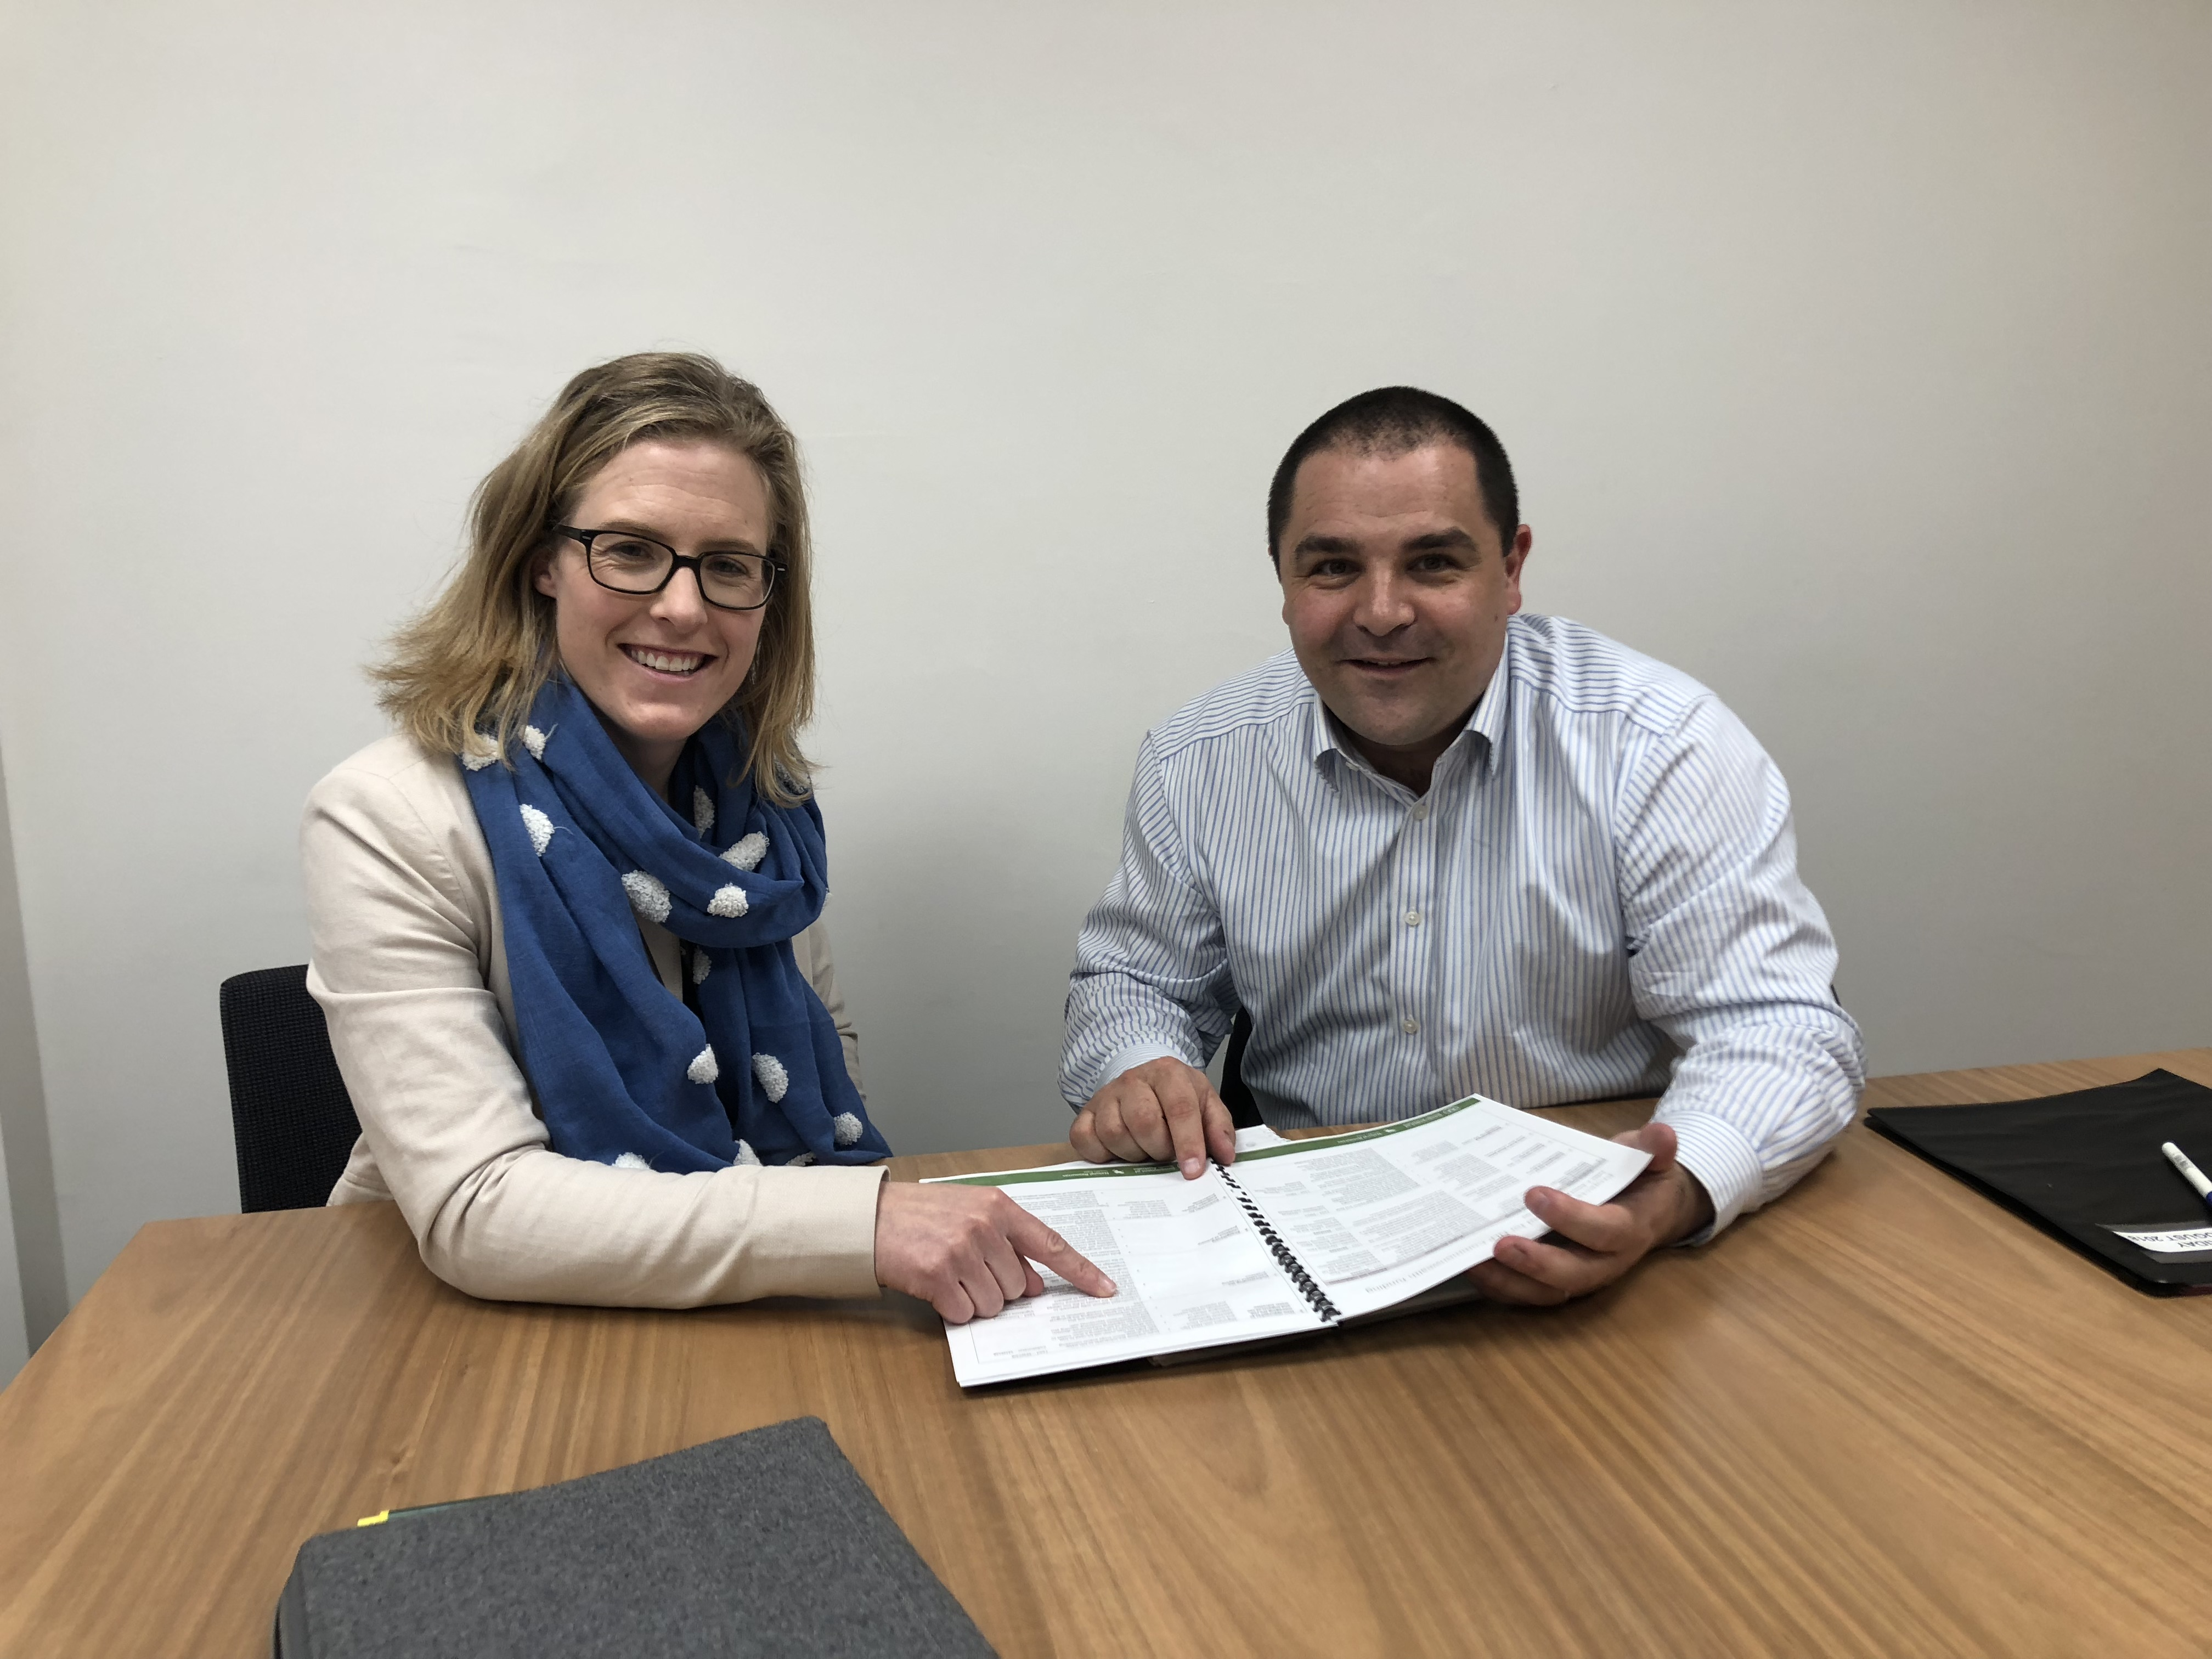 LANDCARE REGIONAL FUNDING FOR THE SOUTH EAST